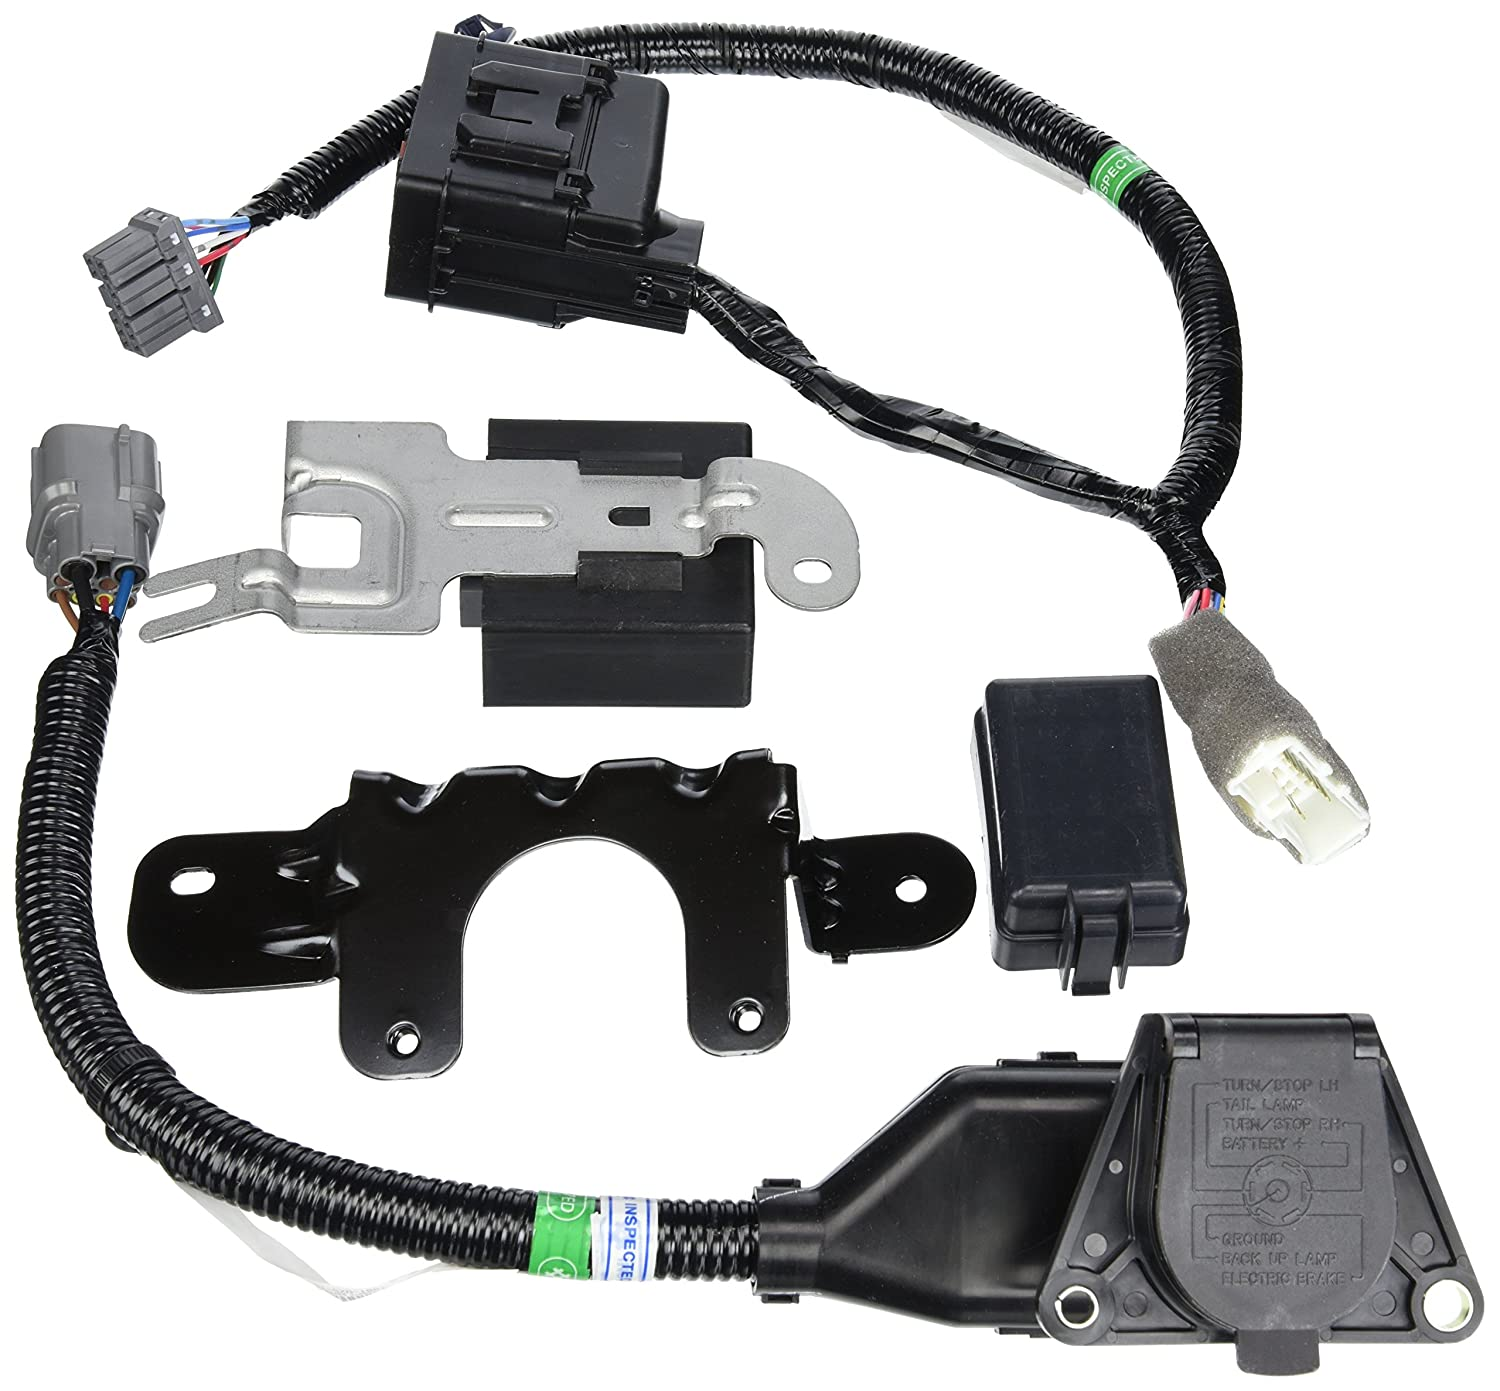 91JV15jVGiL._SL1500_ amazon com genuine honda 08l91 sza 100a trailer hitch harness honda ridgeline trailer wiring harness instructions at mifinder.co